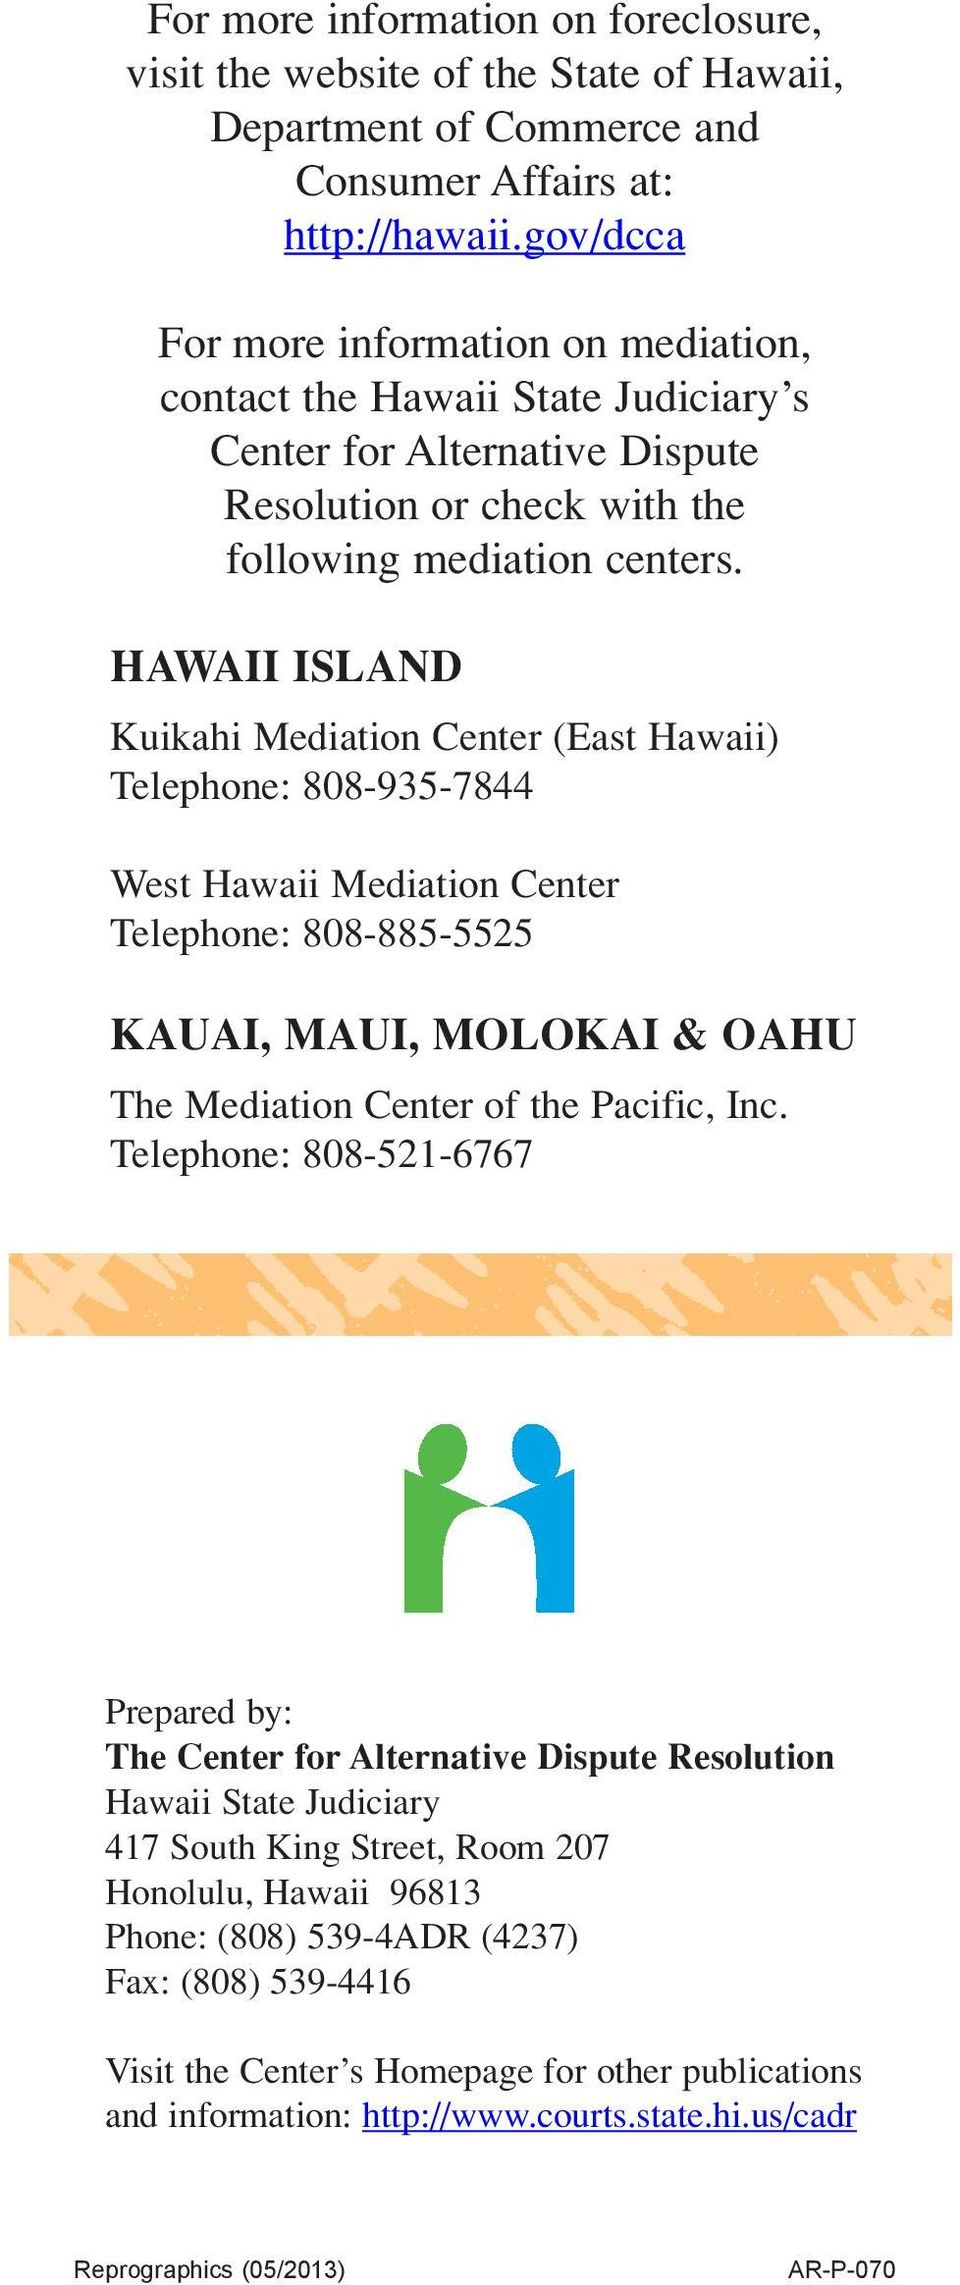 HAWAII ISLAND Kuikahi Mediation Center (East Hawaii) Telephone: 808-935-7844 West Hawaii Mediation Center Telephone: 808-885-5525 KAUAI, MAUI, MOLOKAI & OAHU The Mediation Center of the Pacific, Inc.